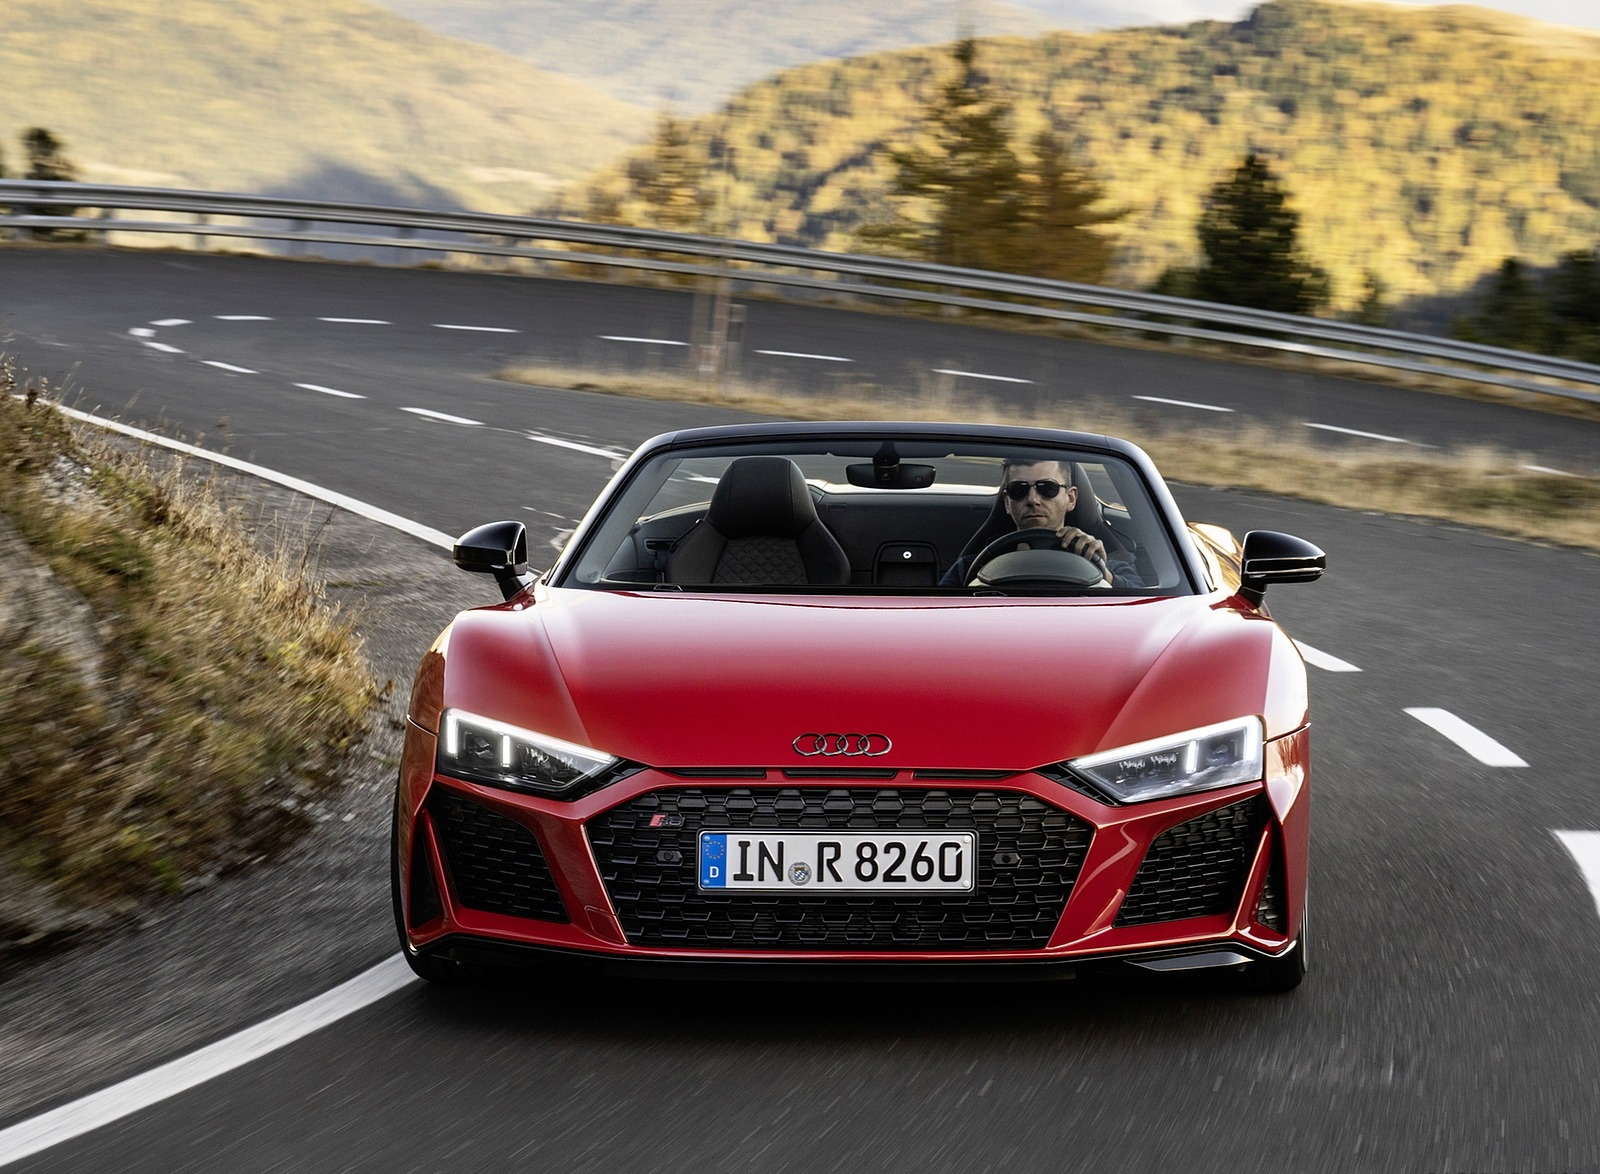 2020 Audi R8 V10 RWD Spyder (Color: Tango Red) Front Wallpapers (3)